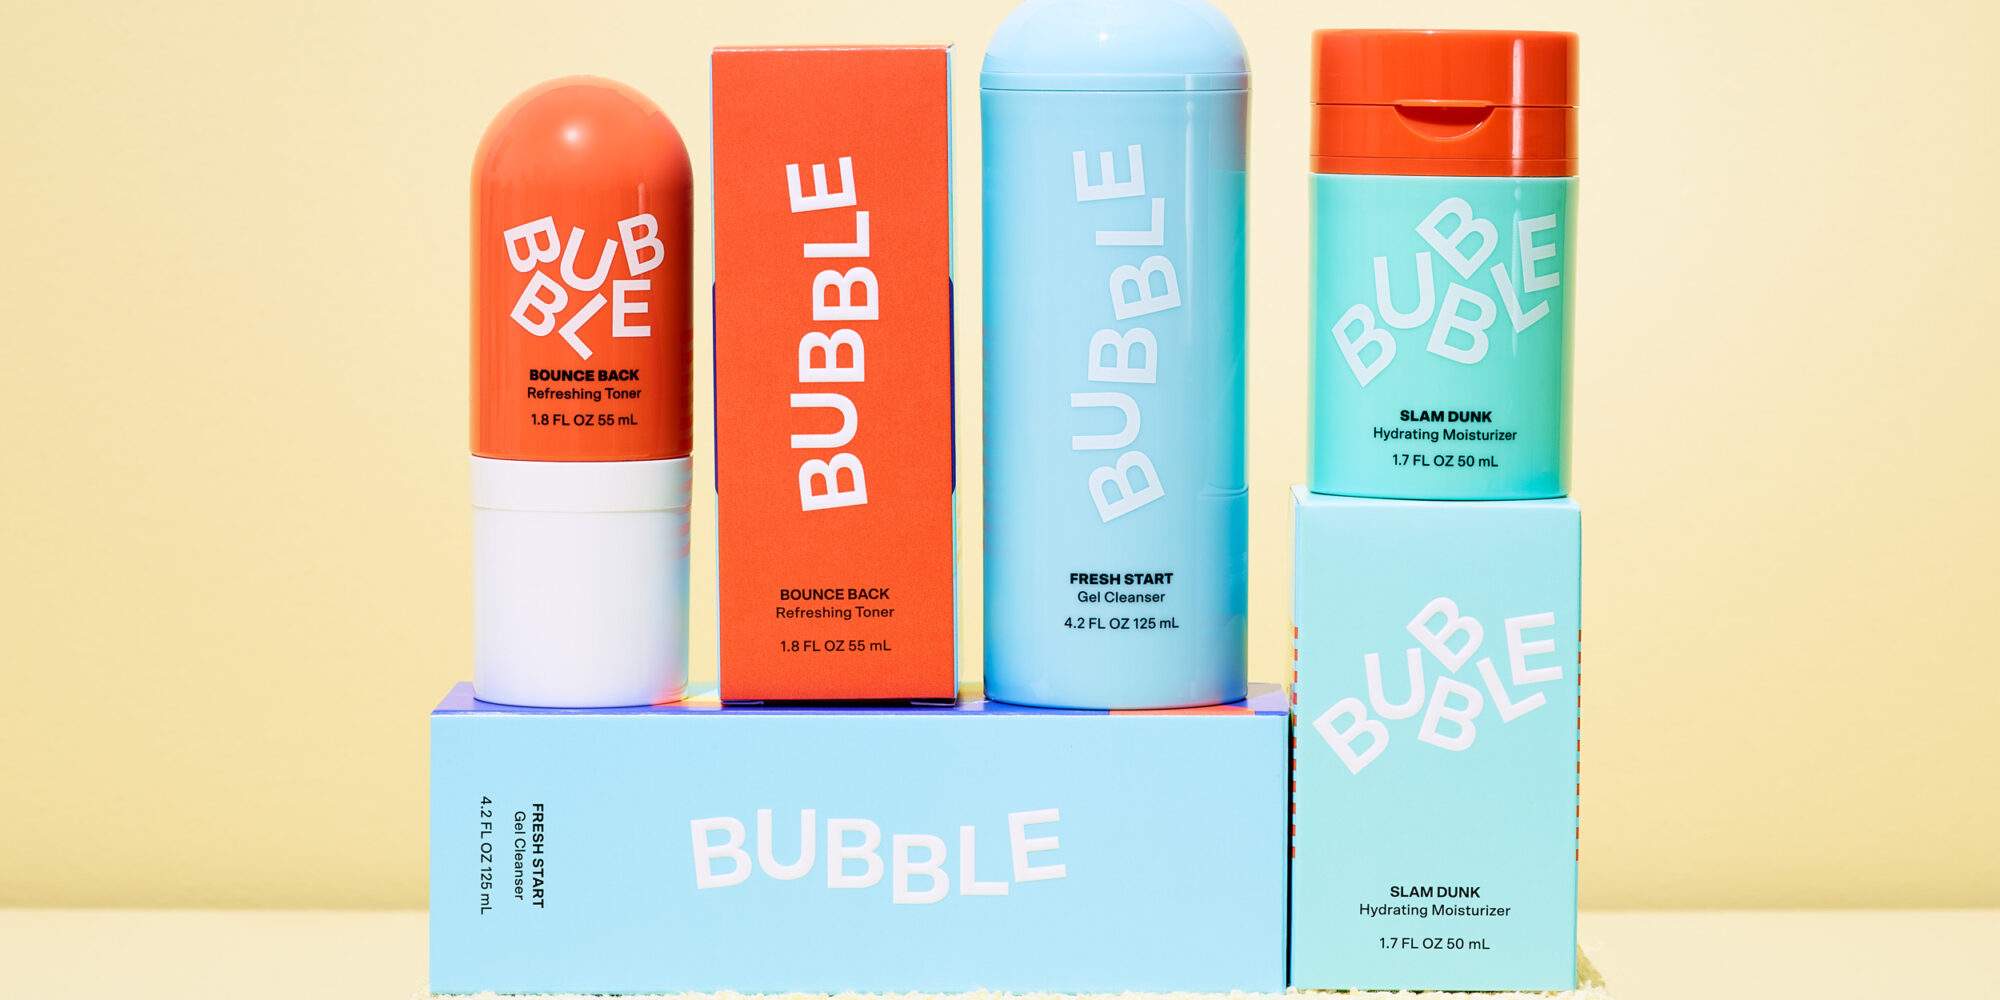 VC-Backed Brand Bubble's Affordable, TikTok-Charged Gen Z Skincare Strategy